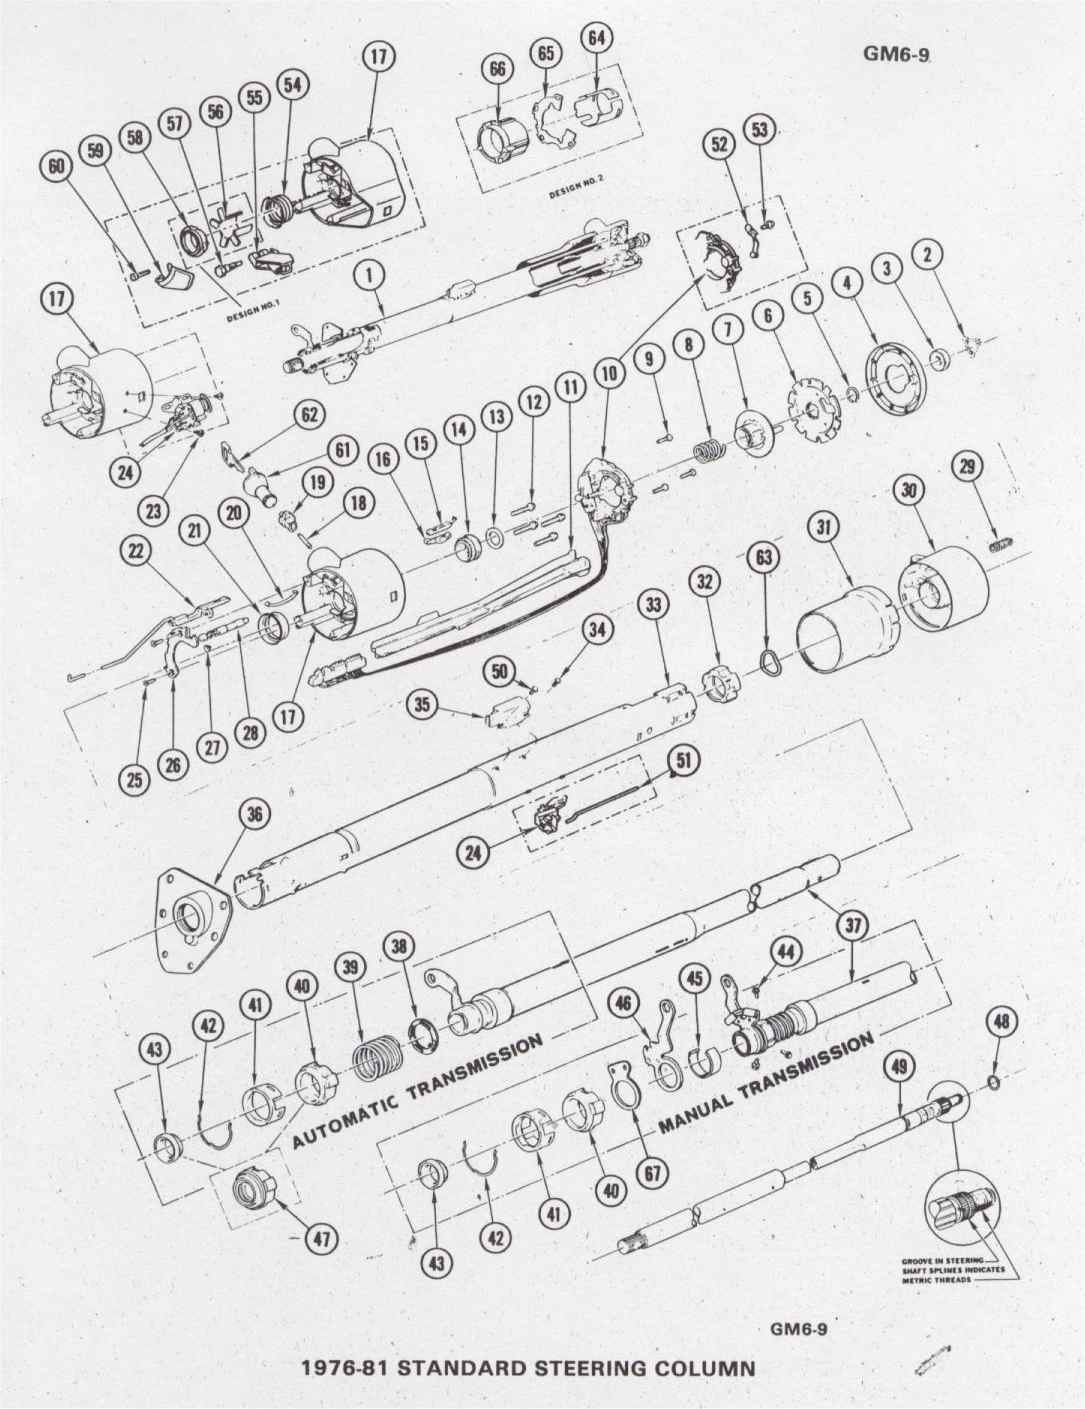 Chevy Camaro Steering Column Wiring Diagram, Chevy, Get